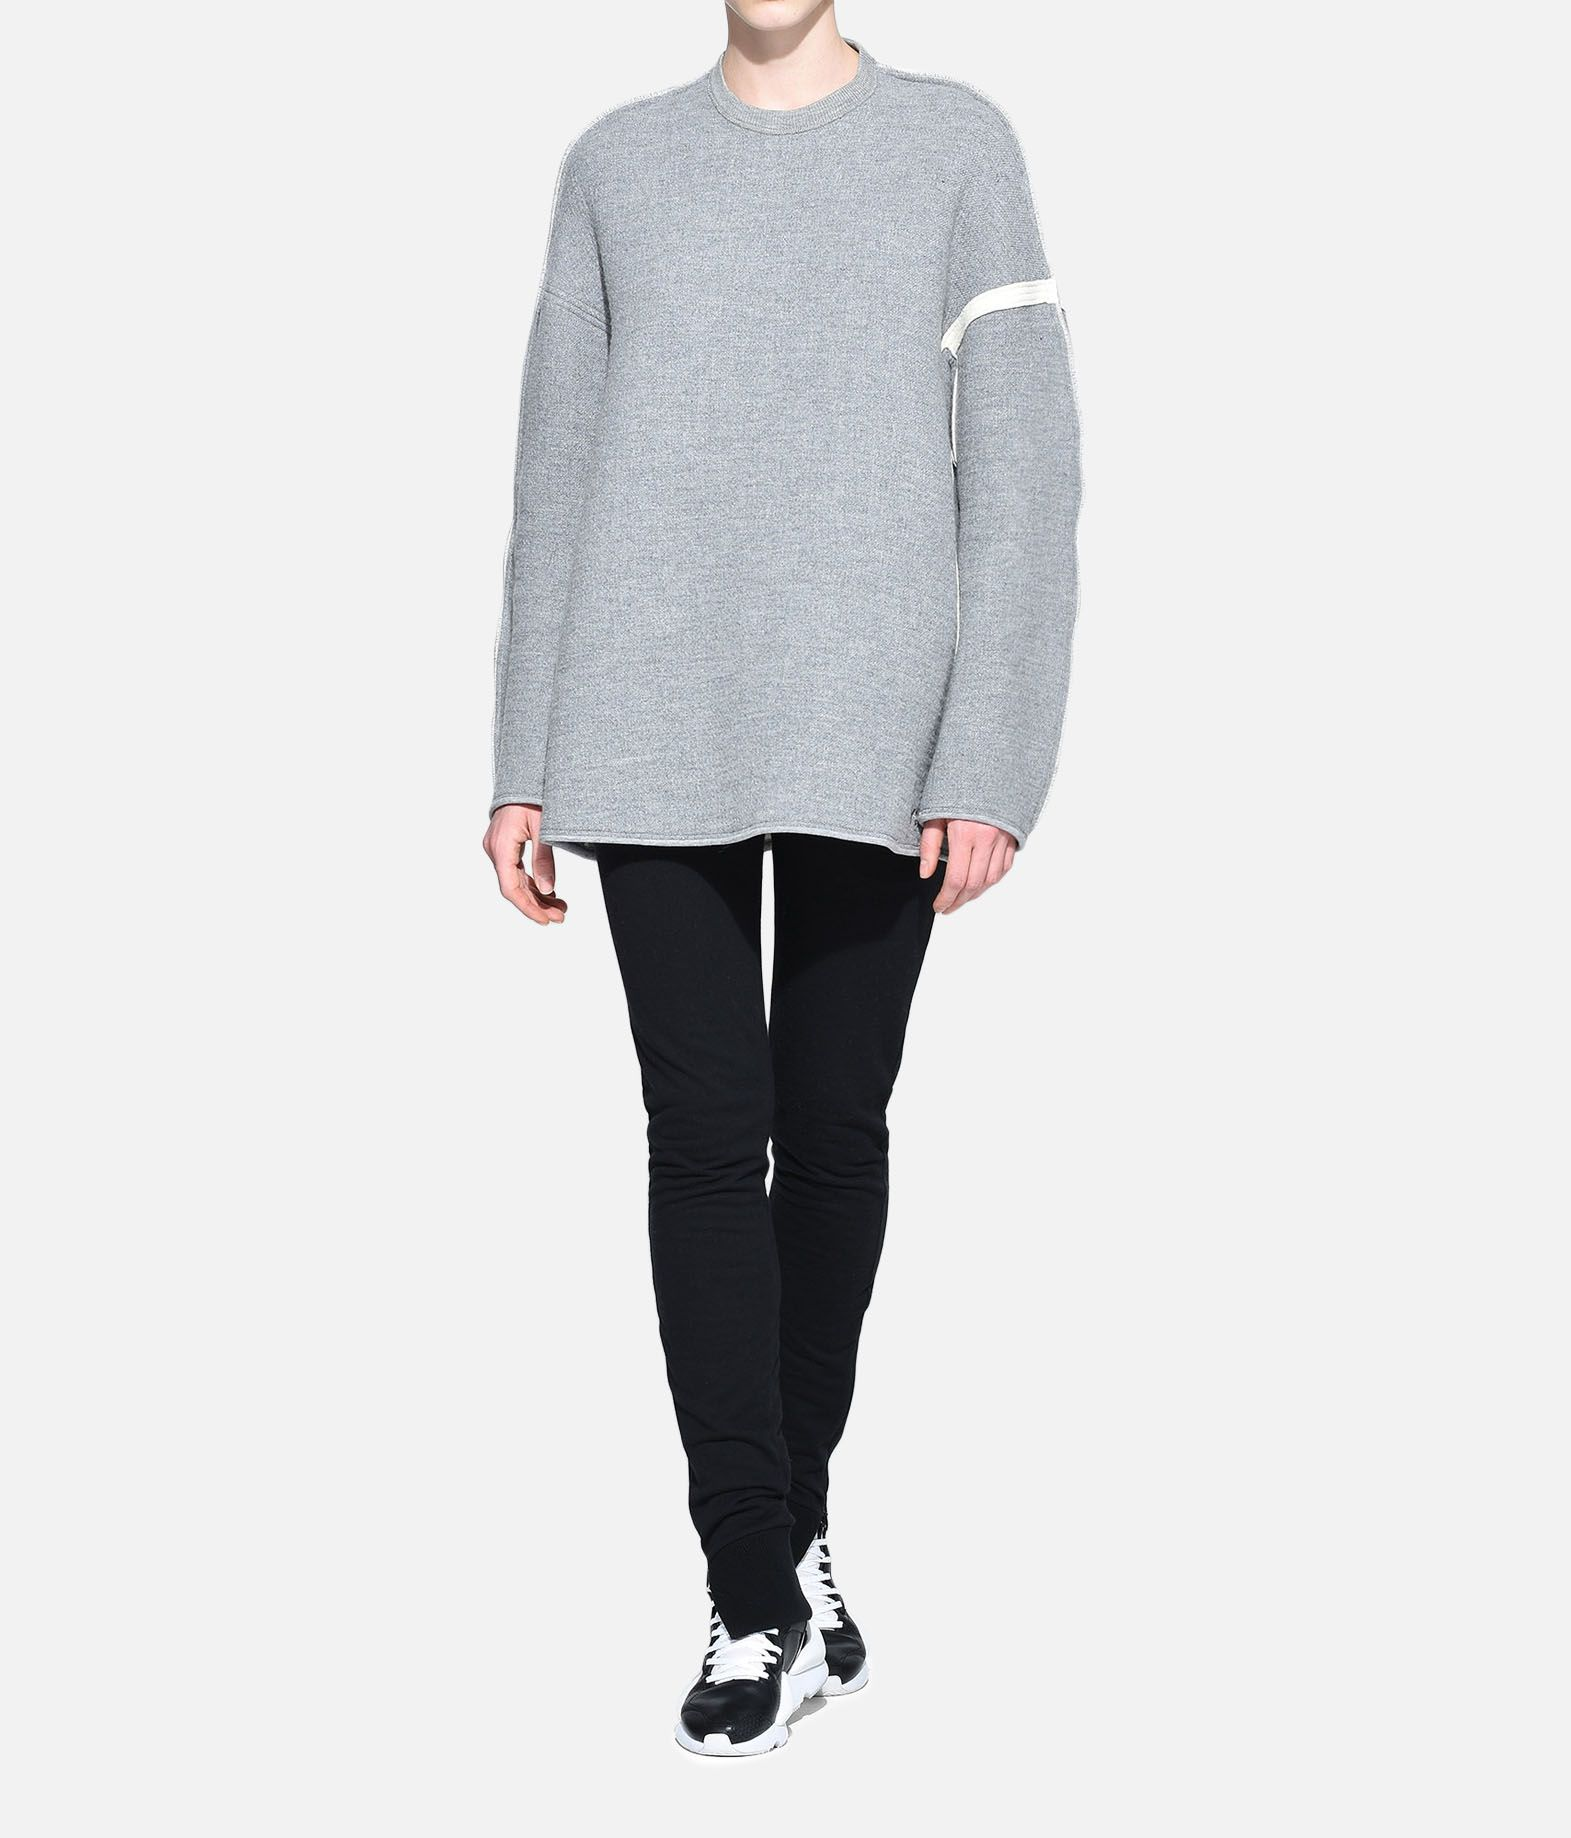 Y-3 Y-3 Oversize Spacer Wool Sweater Sweatshirt Woman a